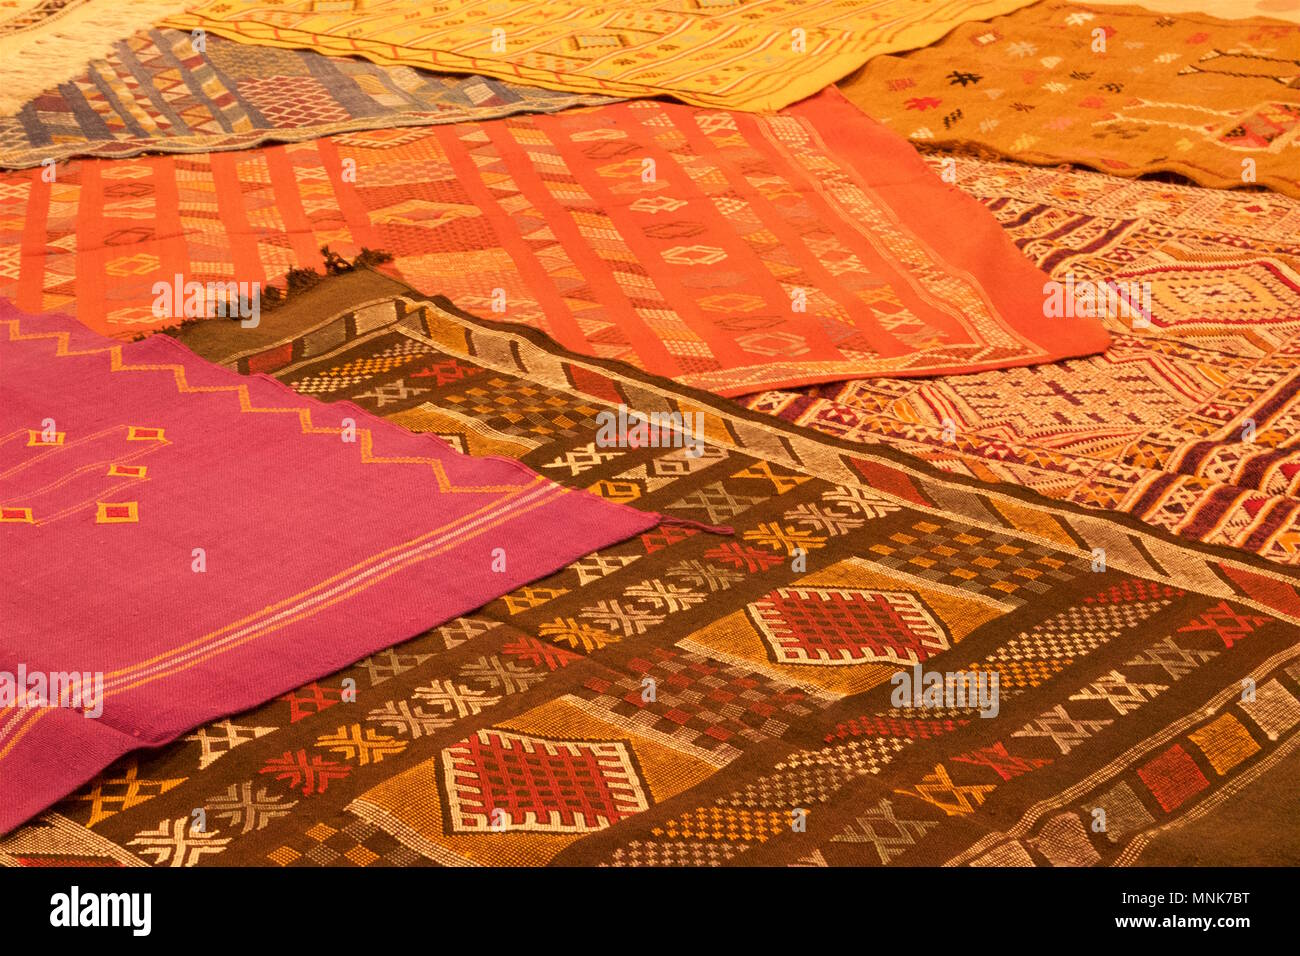 A collection of overlapping, patterned Moroccan rugs - Stock Image